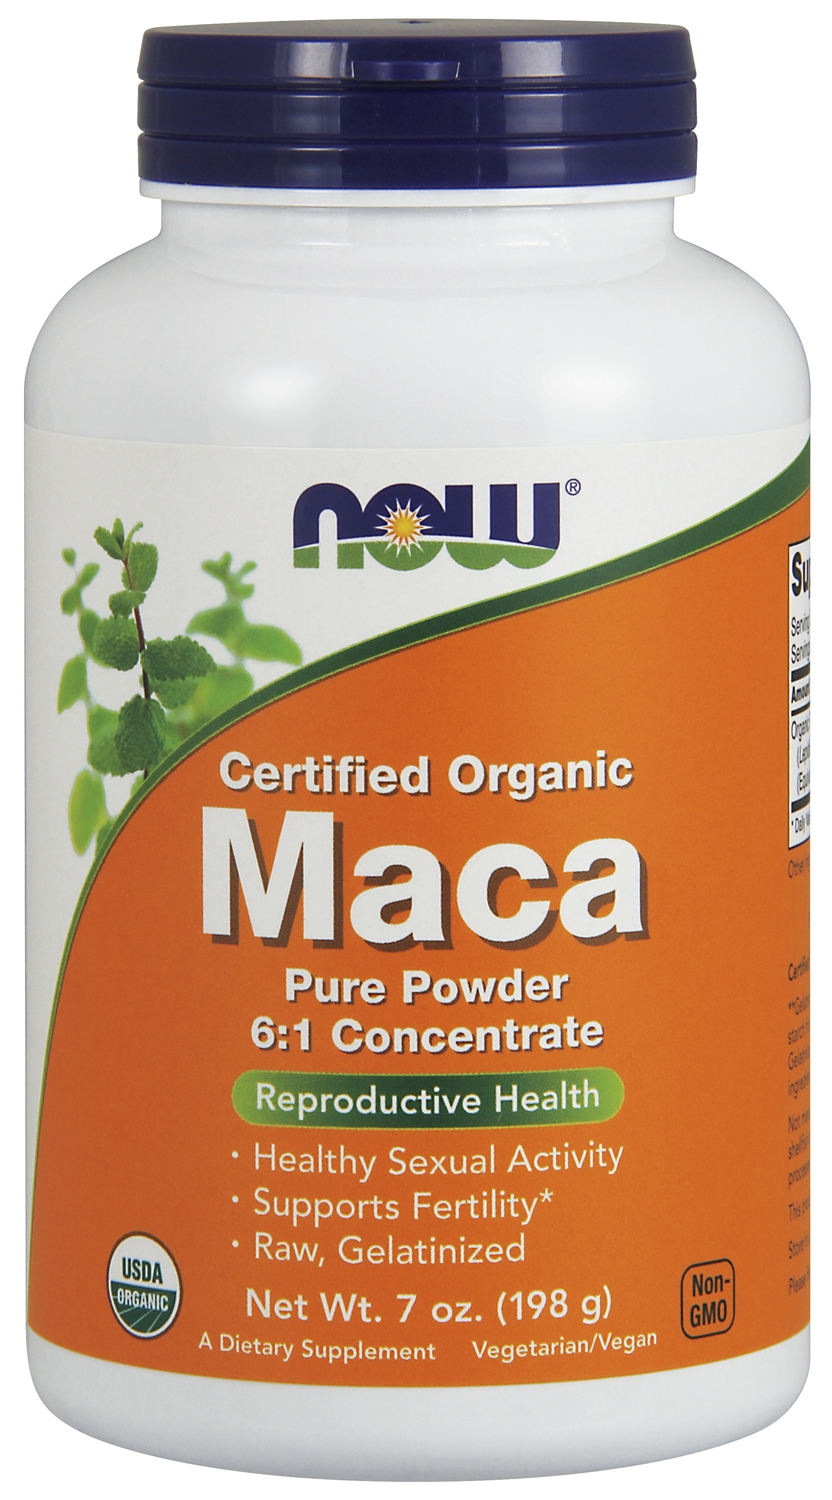 Maca Pure Powder 7 oz (198 g) by NOW